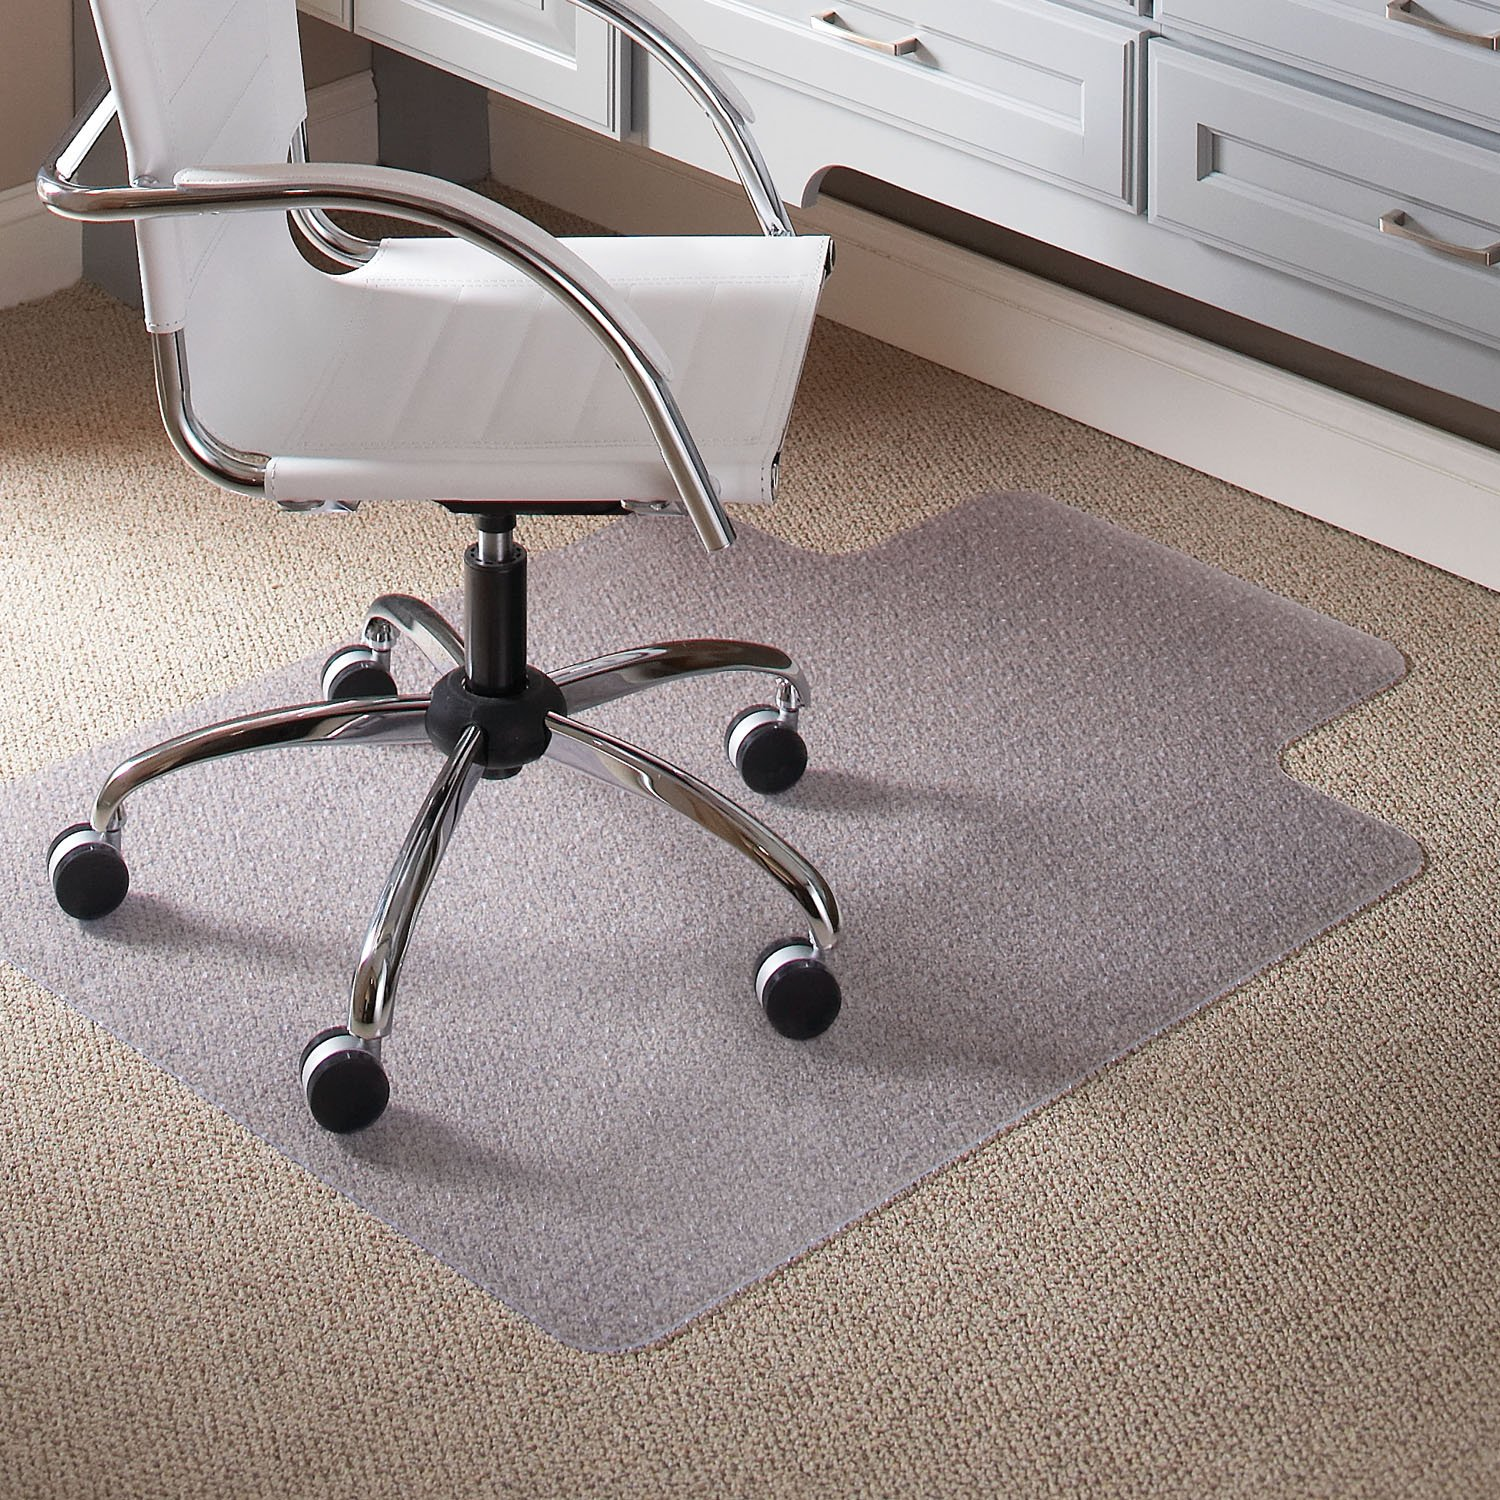 Carpet Chair Mats for Low Pile, 45-Inch by 53-Inch with Lip, Clear Vinyl